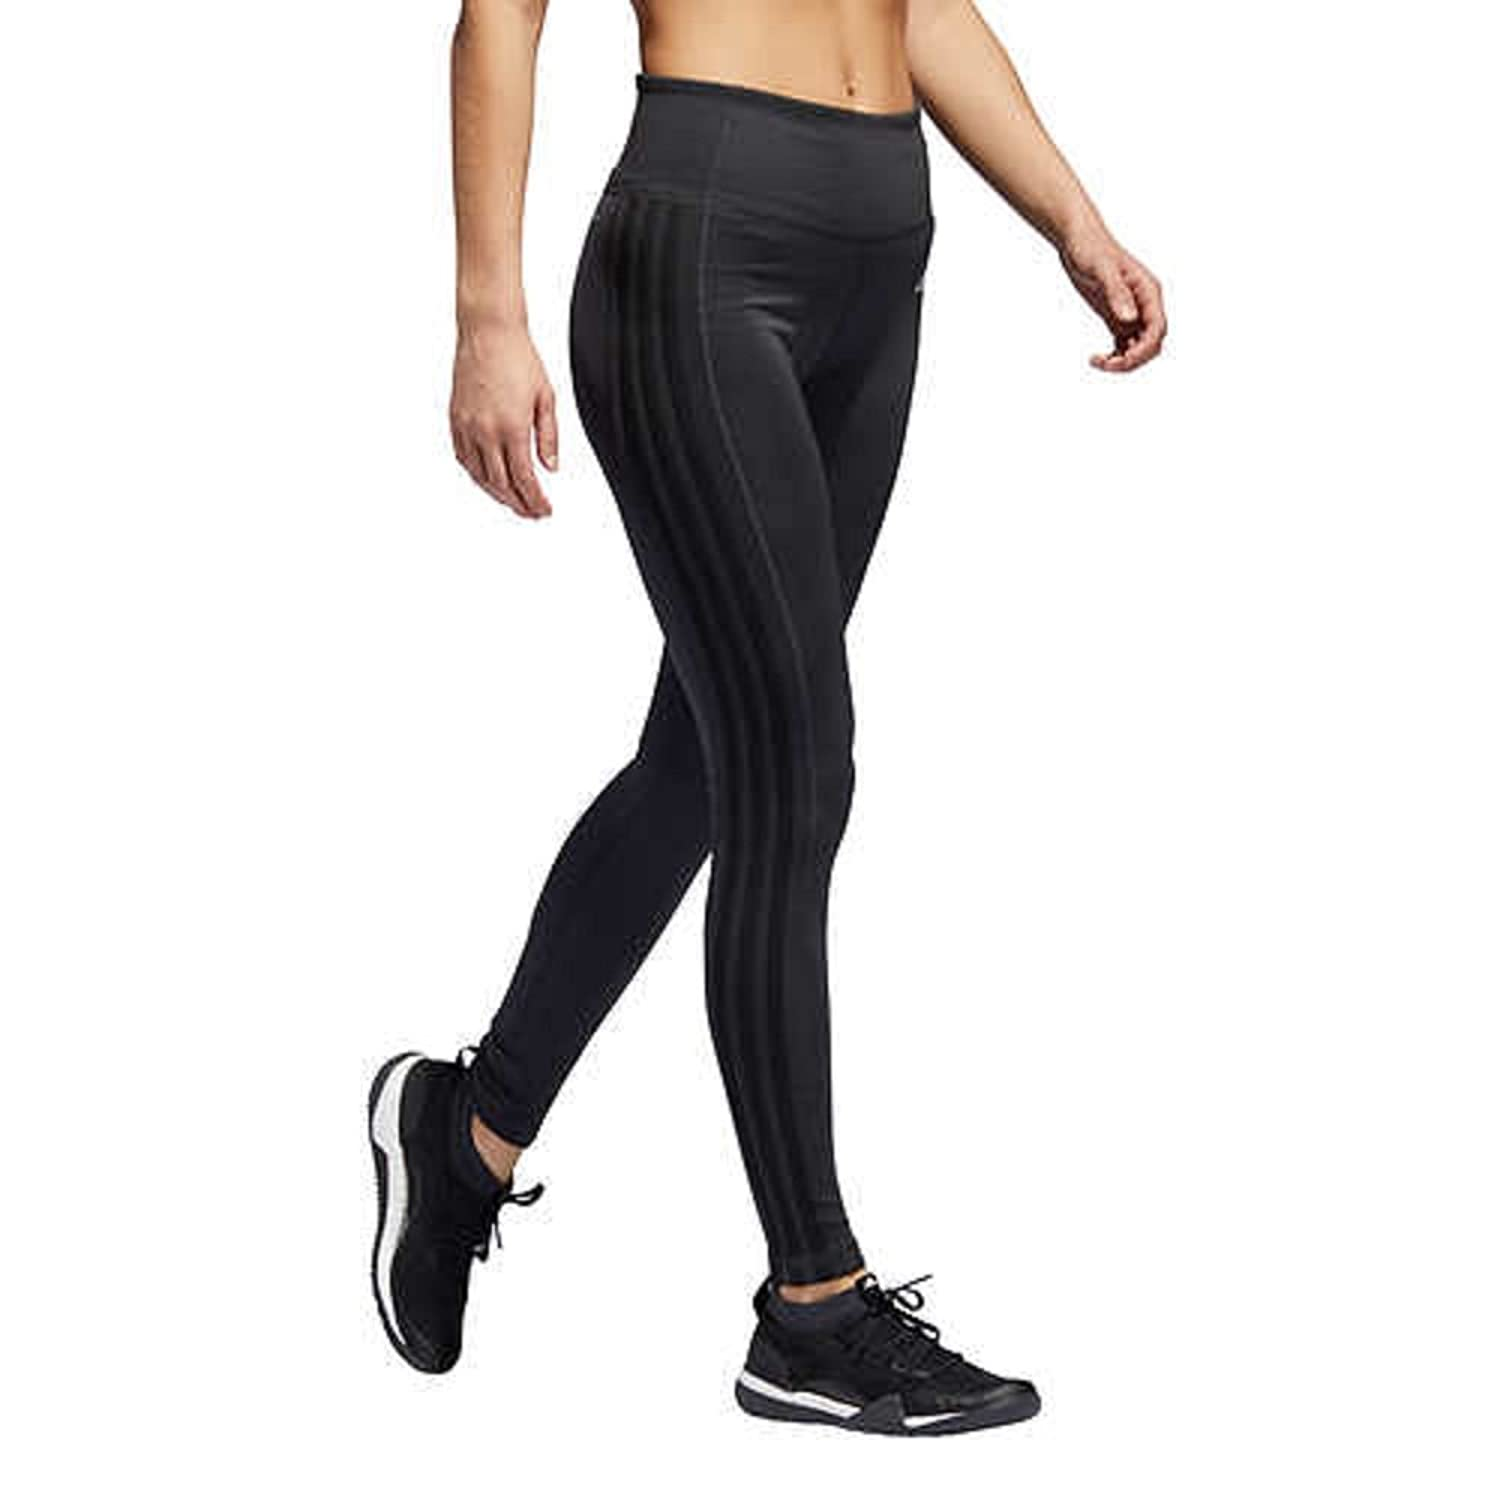 65b8d221882ed Top 10 wholesale Adidas Tights Womens - Chinabrands.com